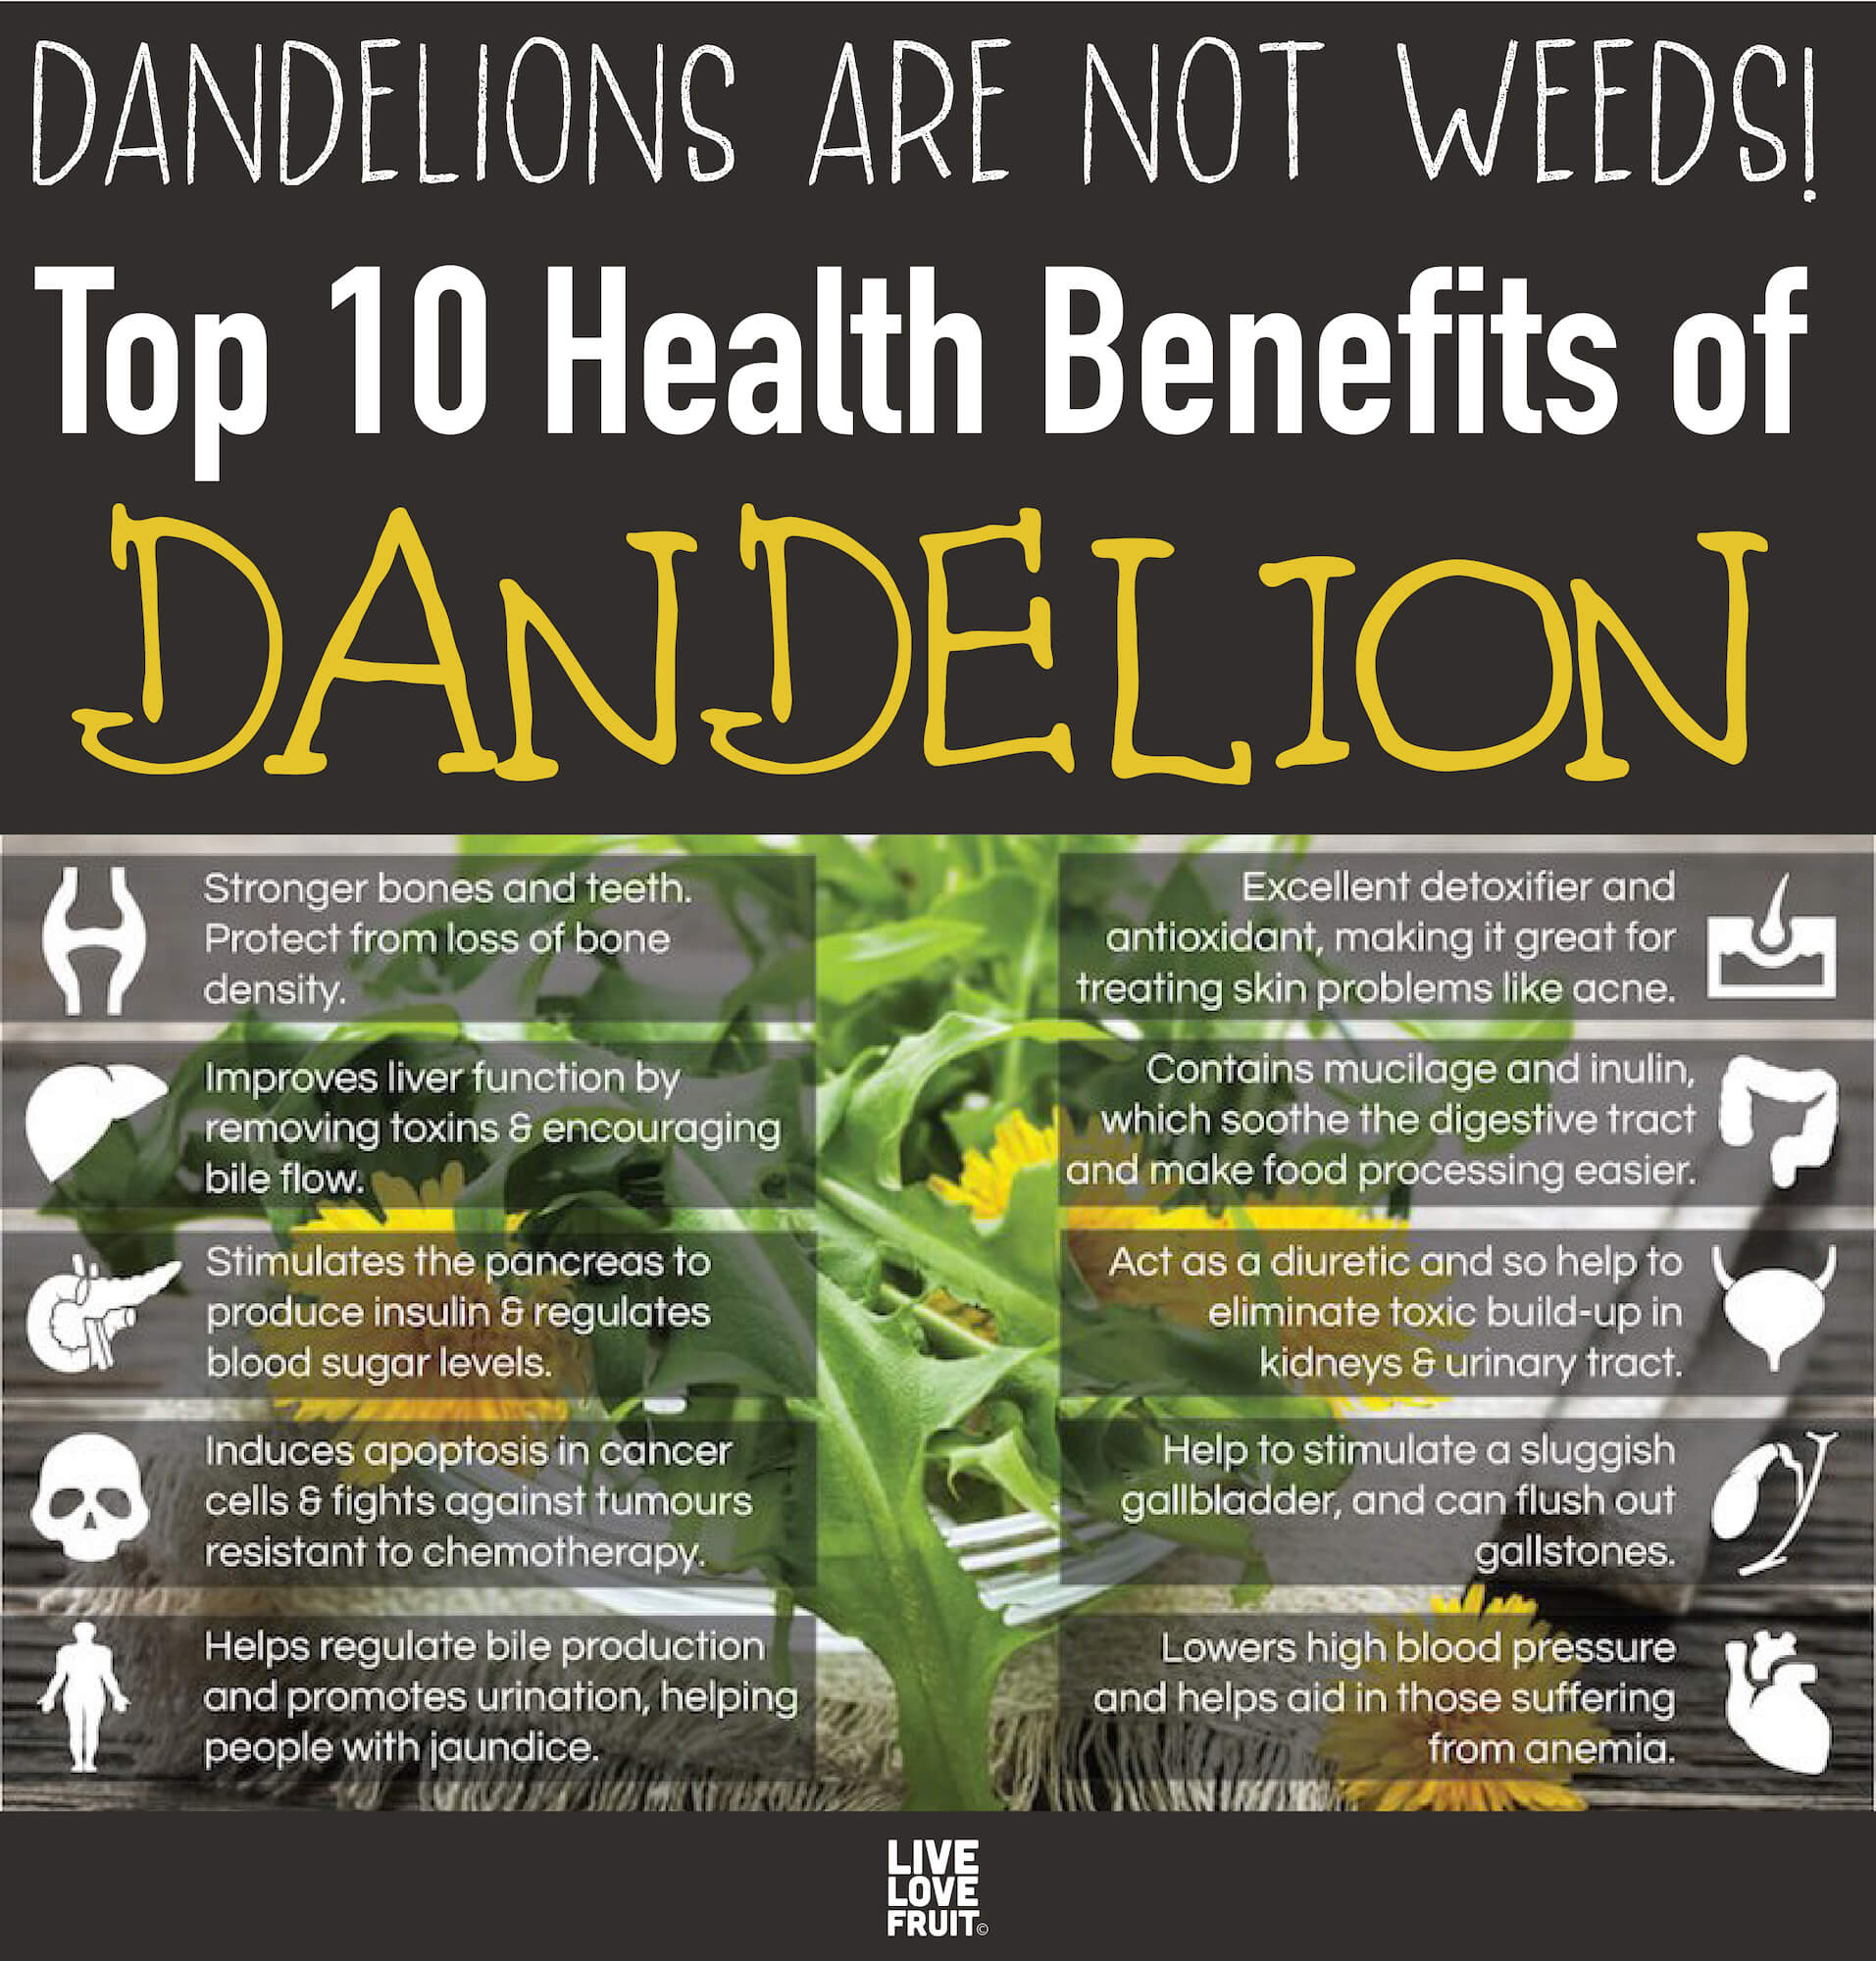 10 health benefits of dandelion laid out over background of cut dandelion with text - dandelions are not weeds! Top 10 health benefits of dandelion